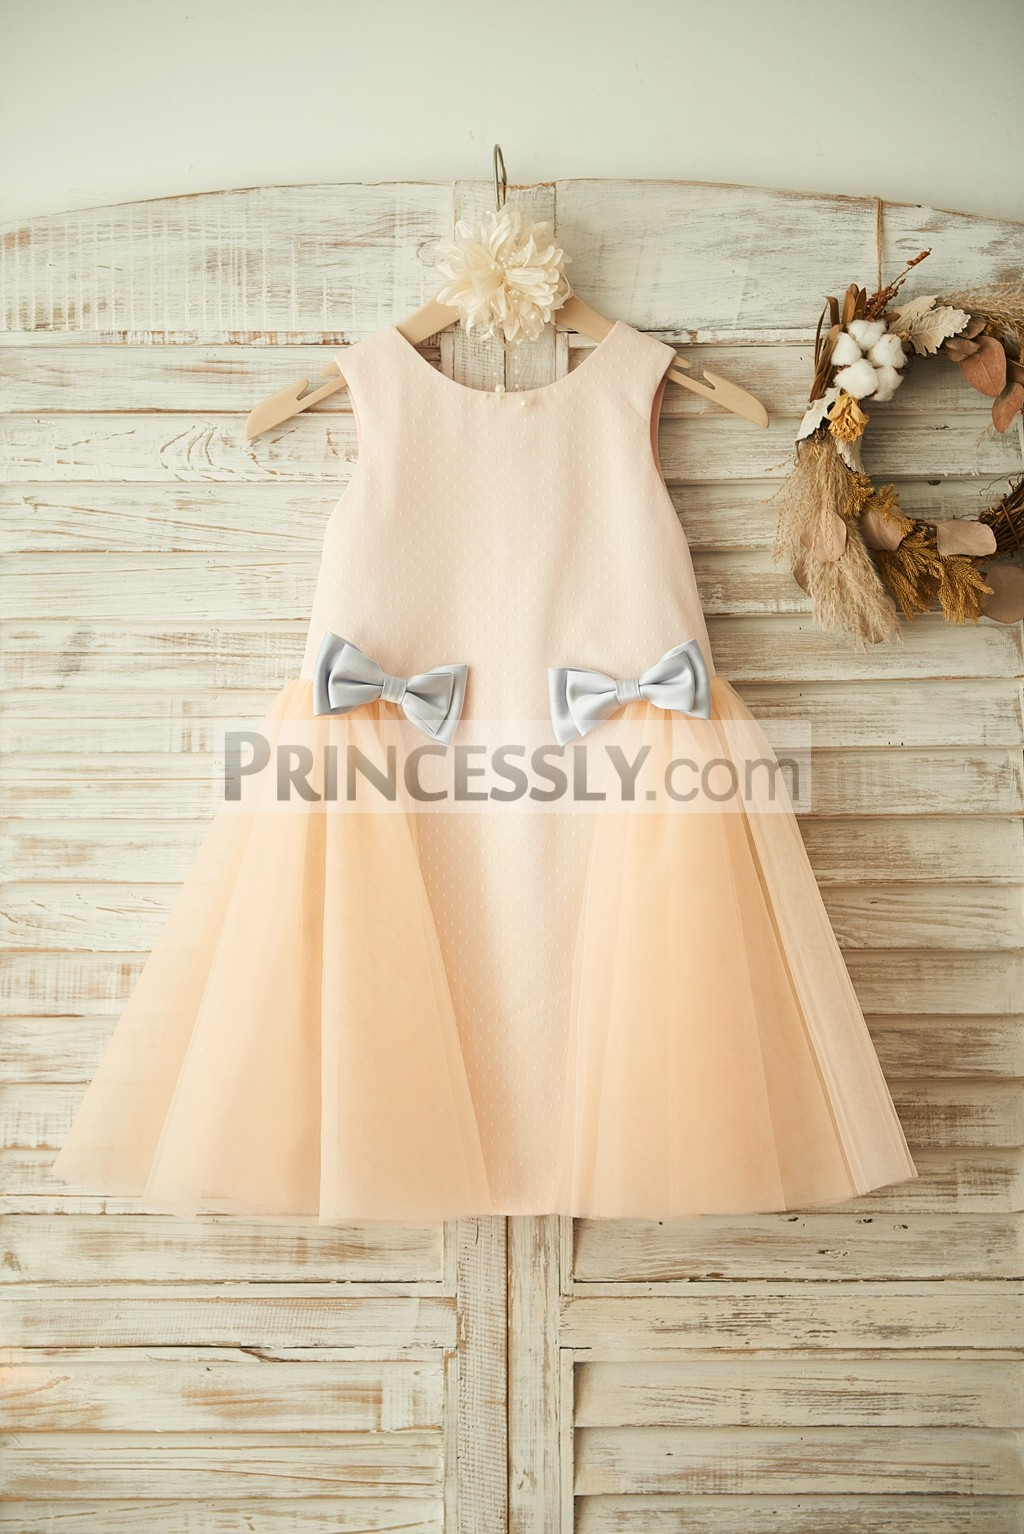 d26c62f690d Champagne Polka Dot Tulle Flower Girl Dress with Silver Gray Bows ...